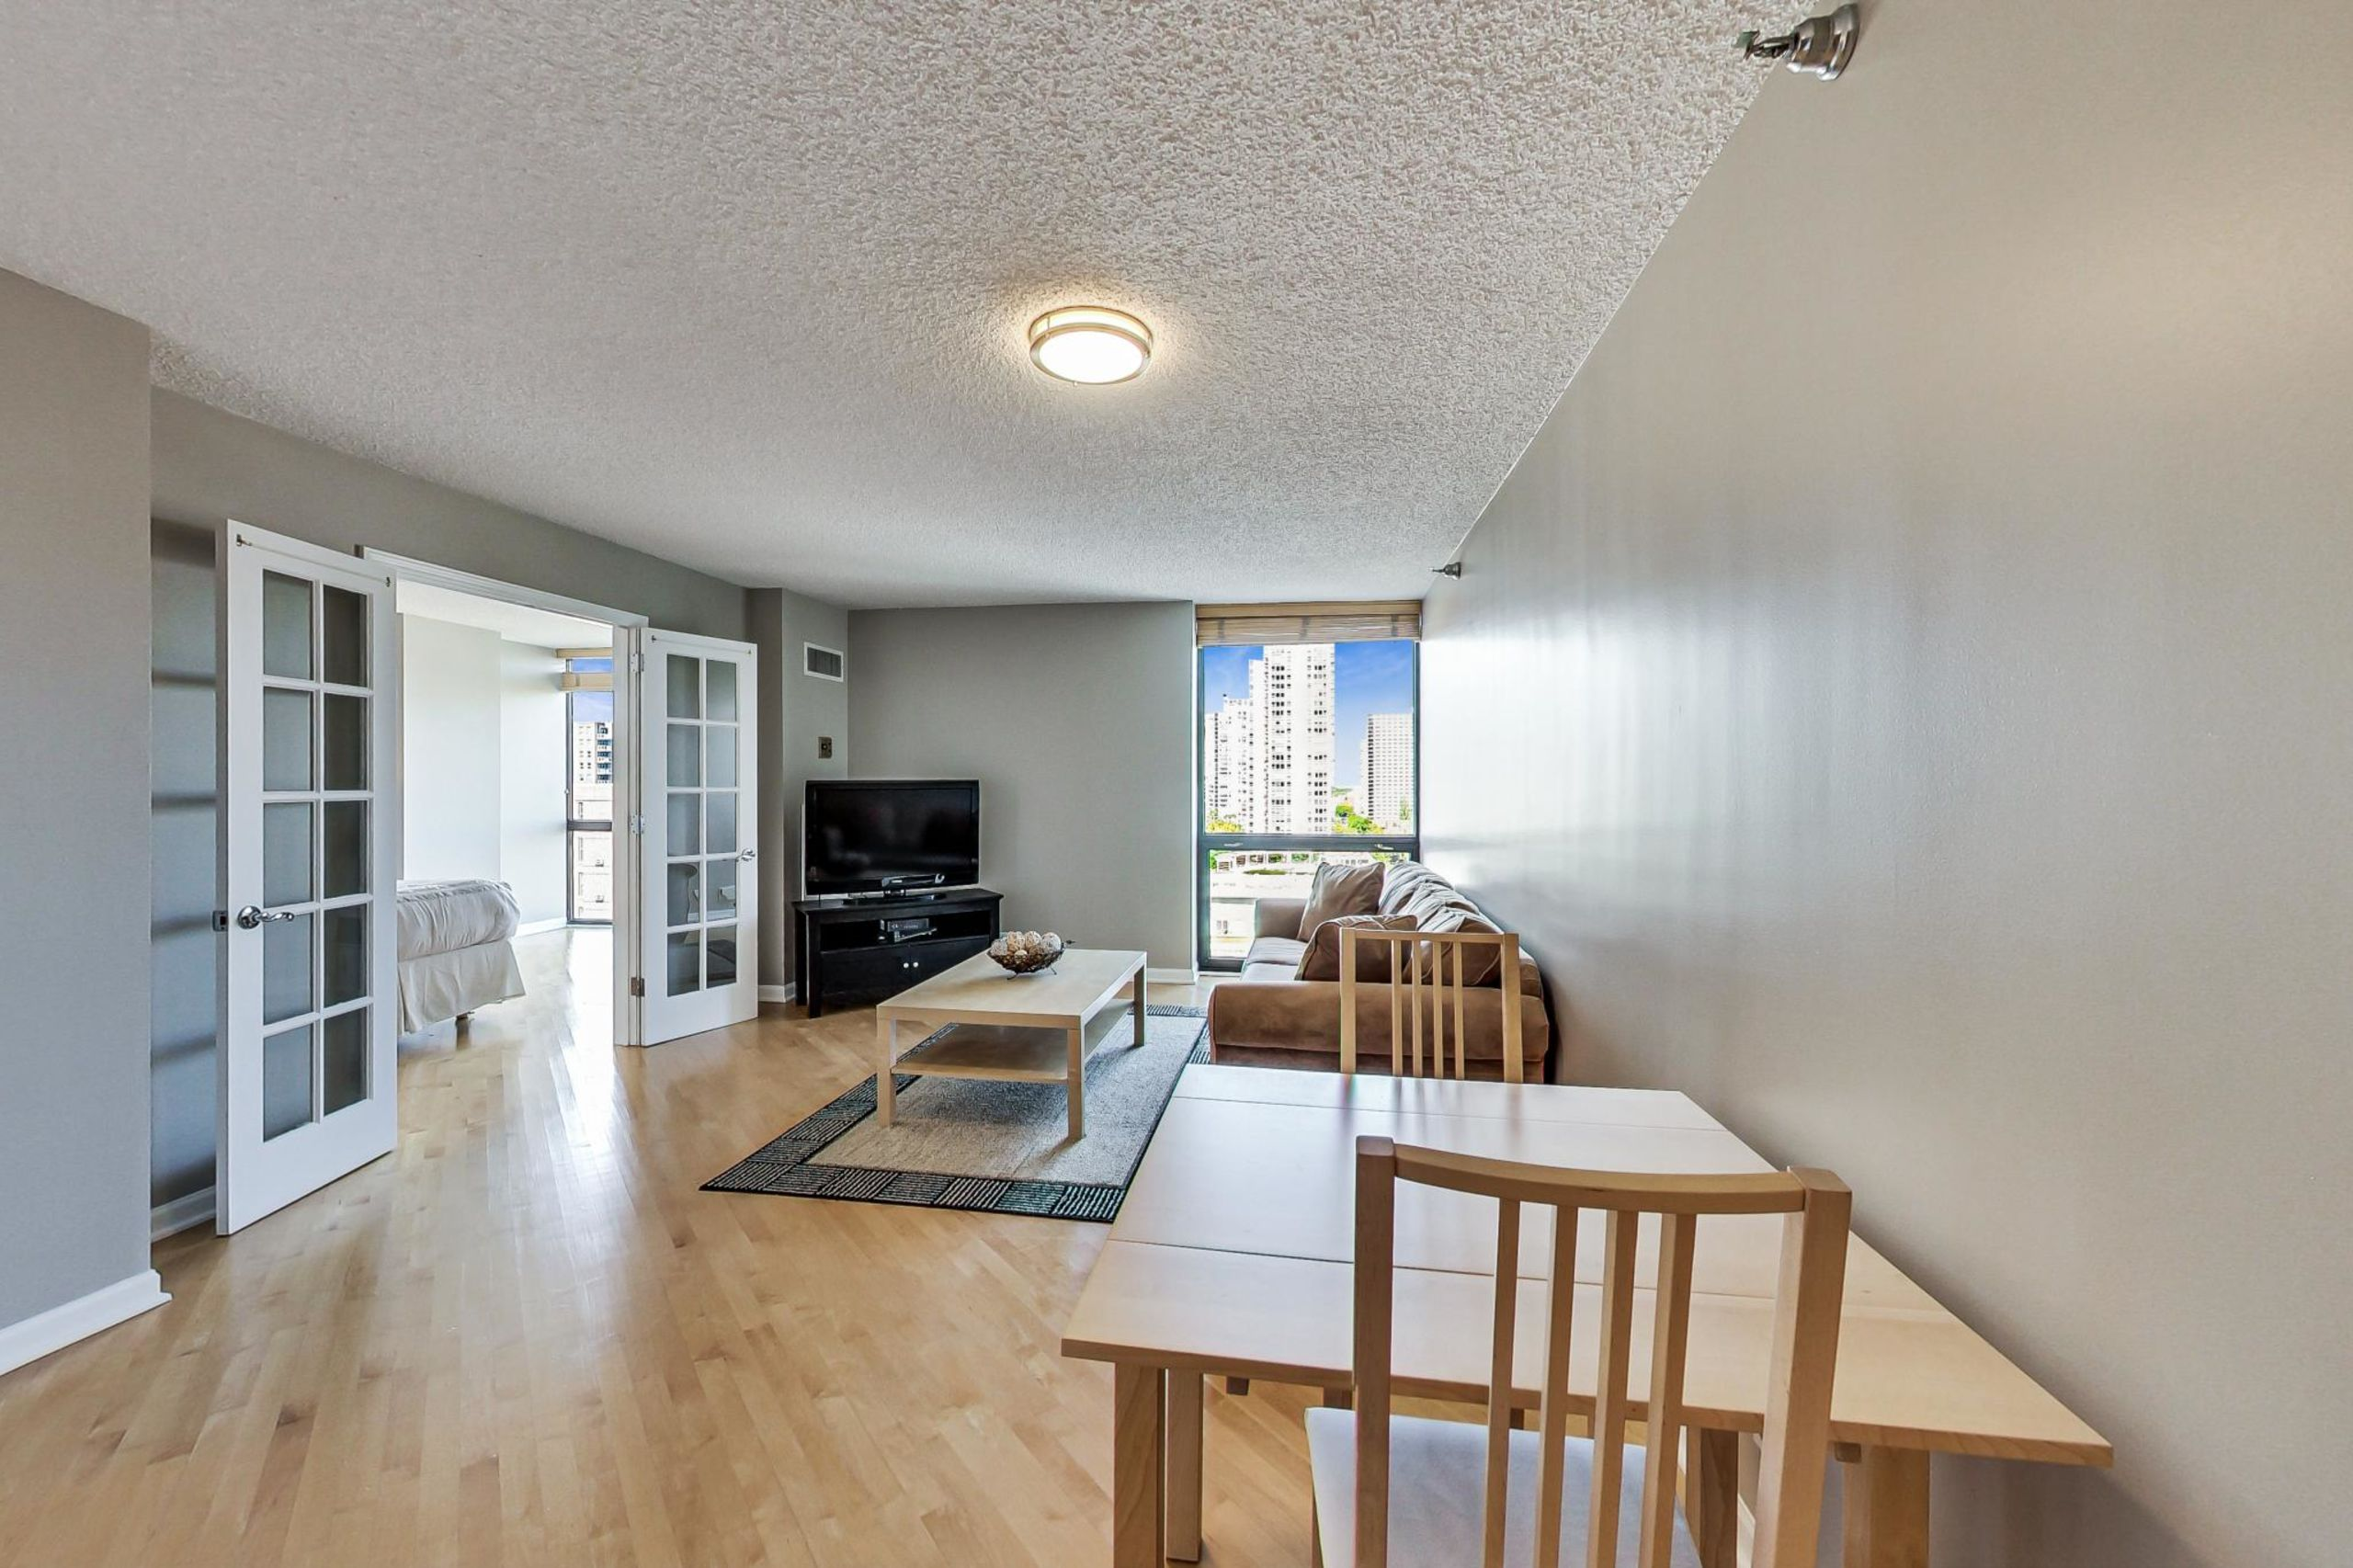 Click Photo For Tour - 1122 N. Clark #1405